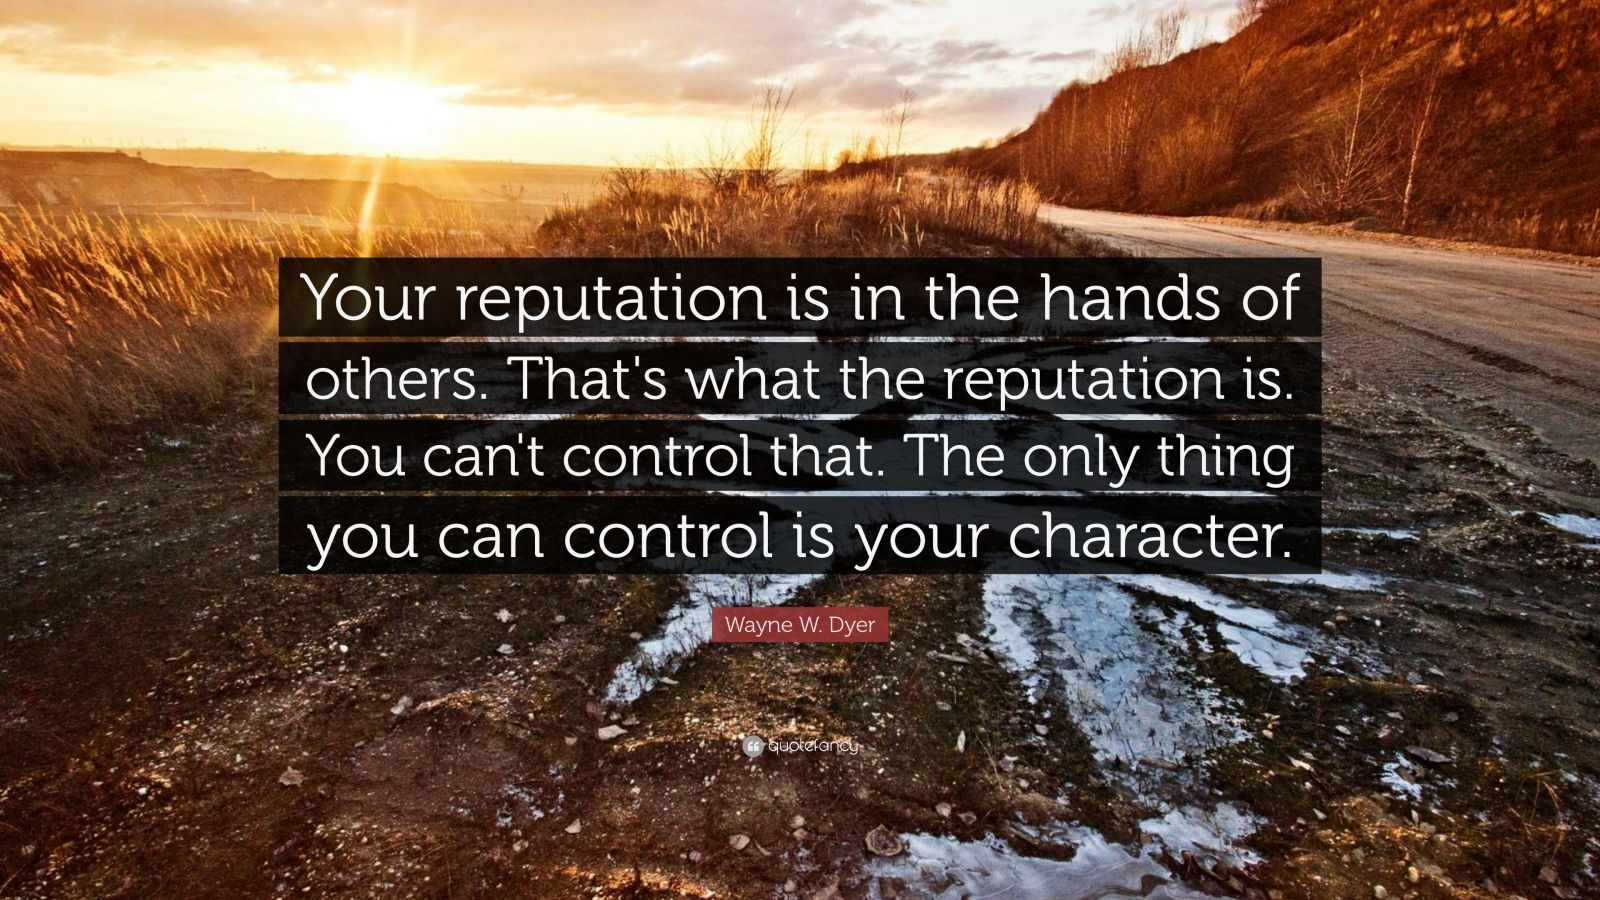 "Wayne W. Dyer Quote: ""Your reputation is in the hands of others. That's what the reputation is. You can't control that. The only thing you can control is your character."""